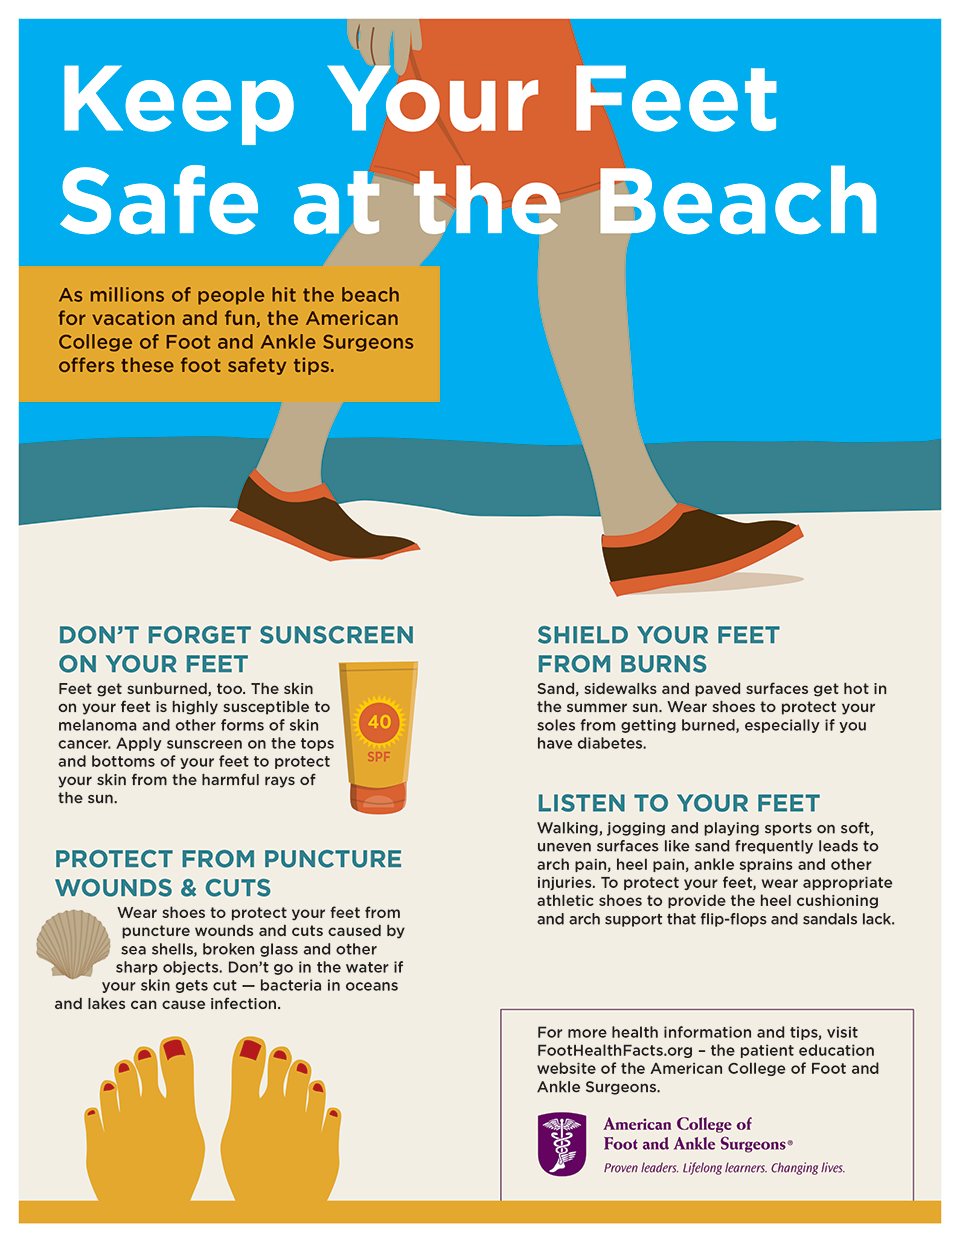 Keep-Your-Feet-Safe-at-the-Beach.png